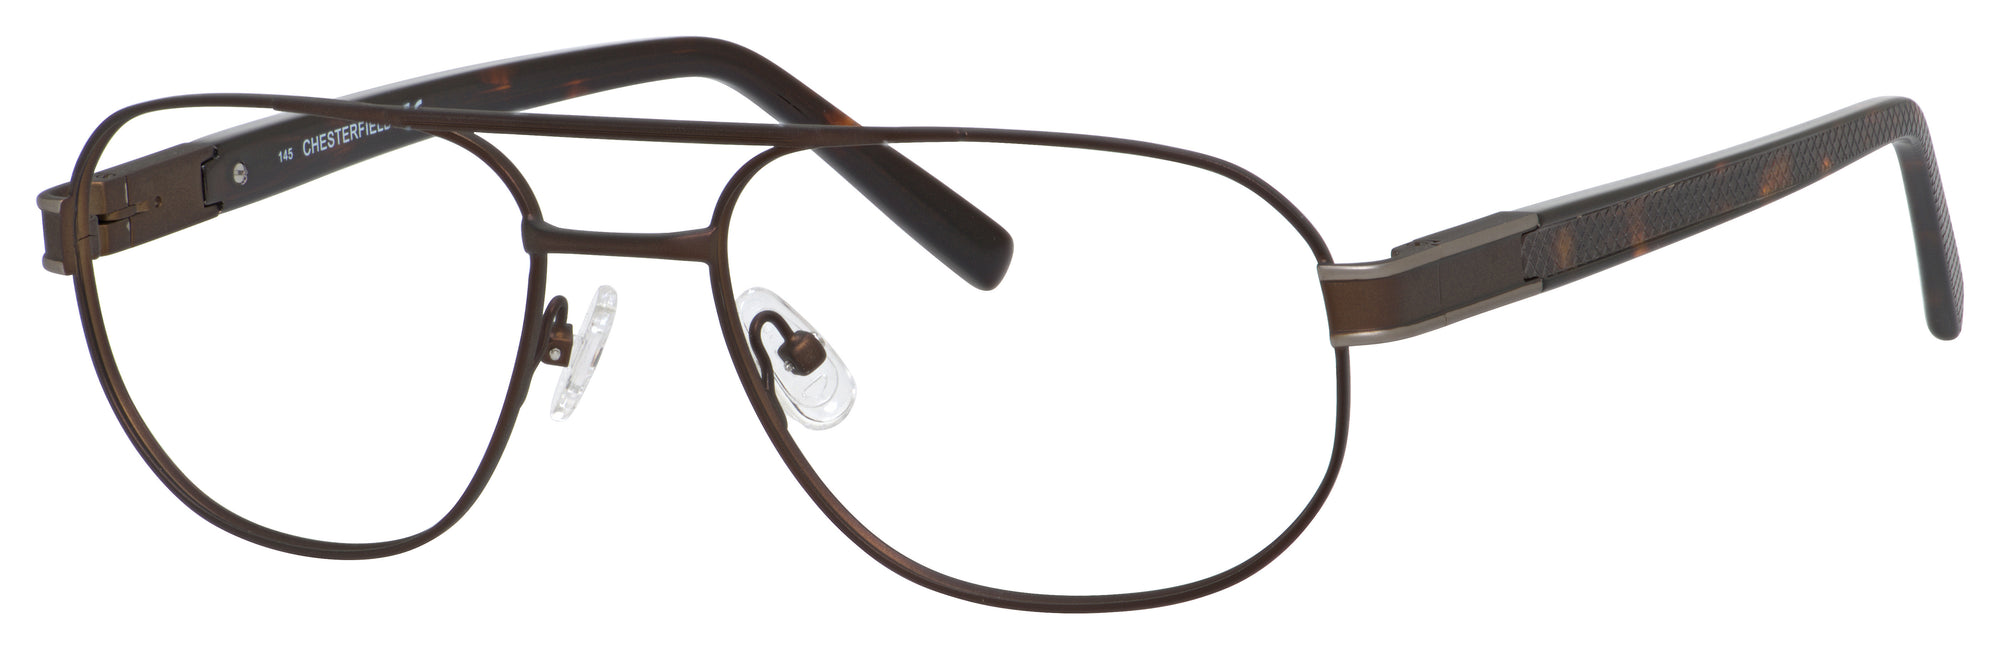 Chesterfield Chesterfield 881 Aviator Eyeglasses 0ERQ-0ERQ  Matte Dark Brown (00 Demo Lens)